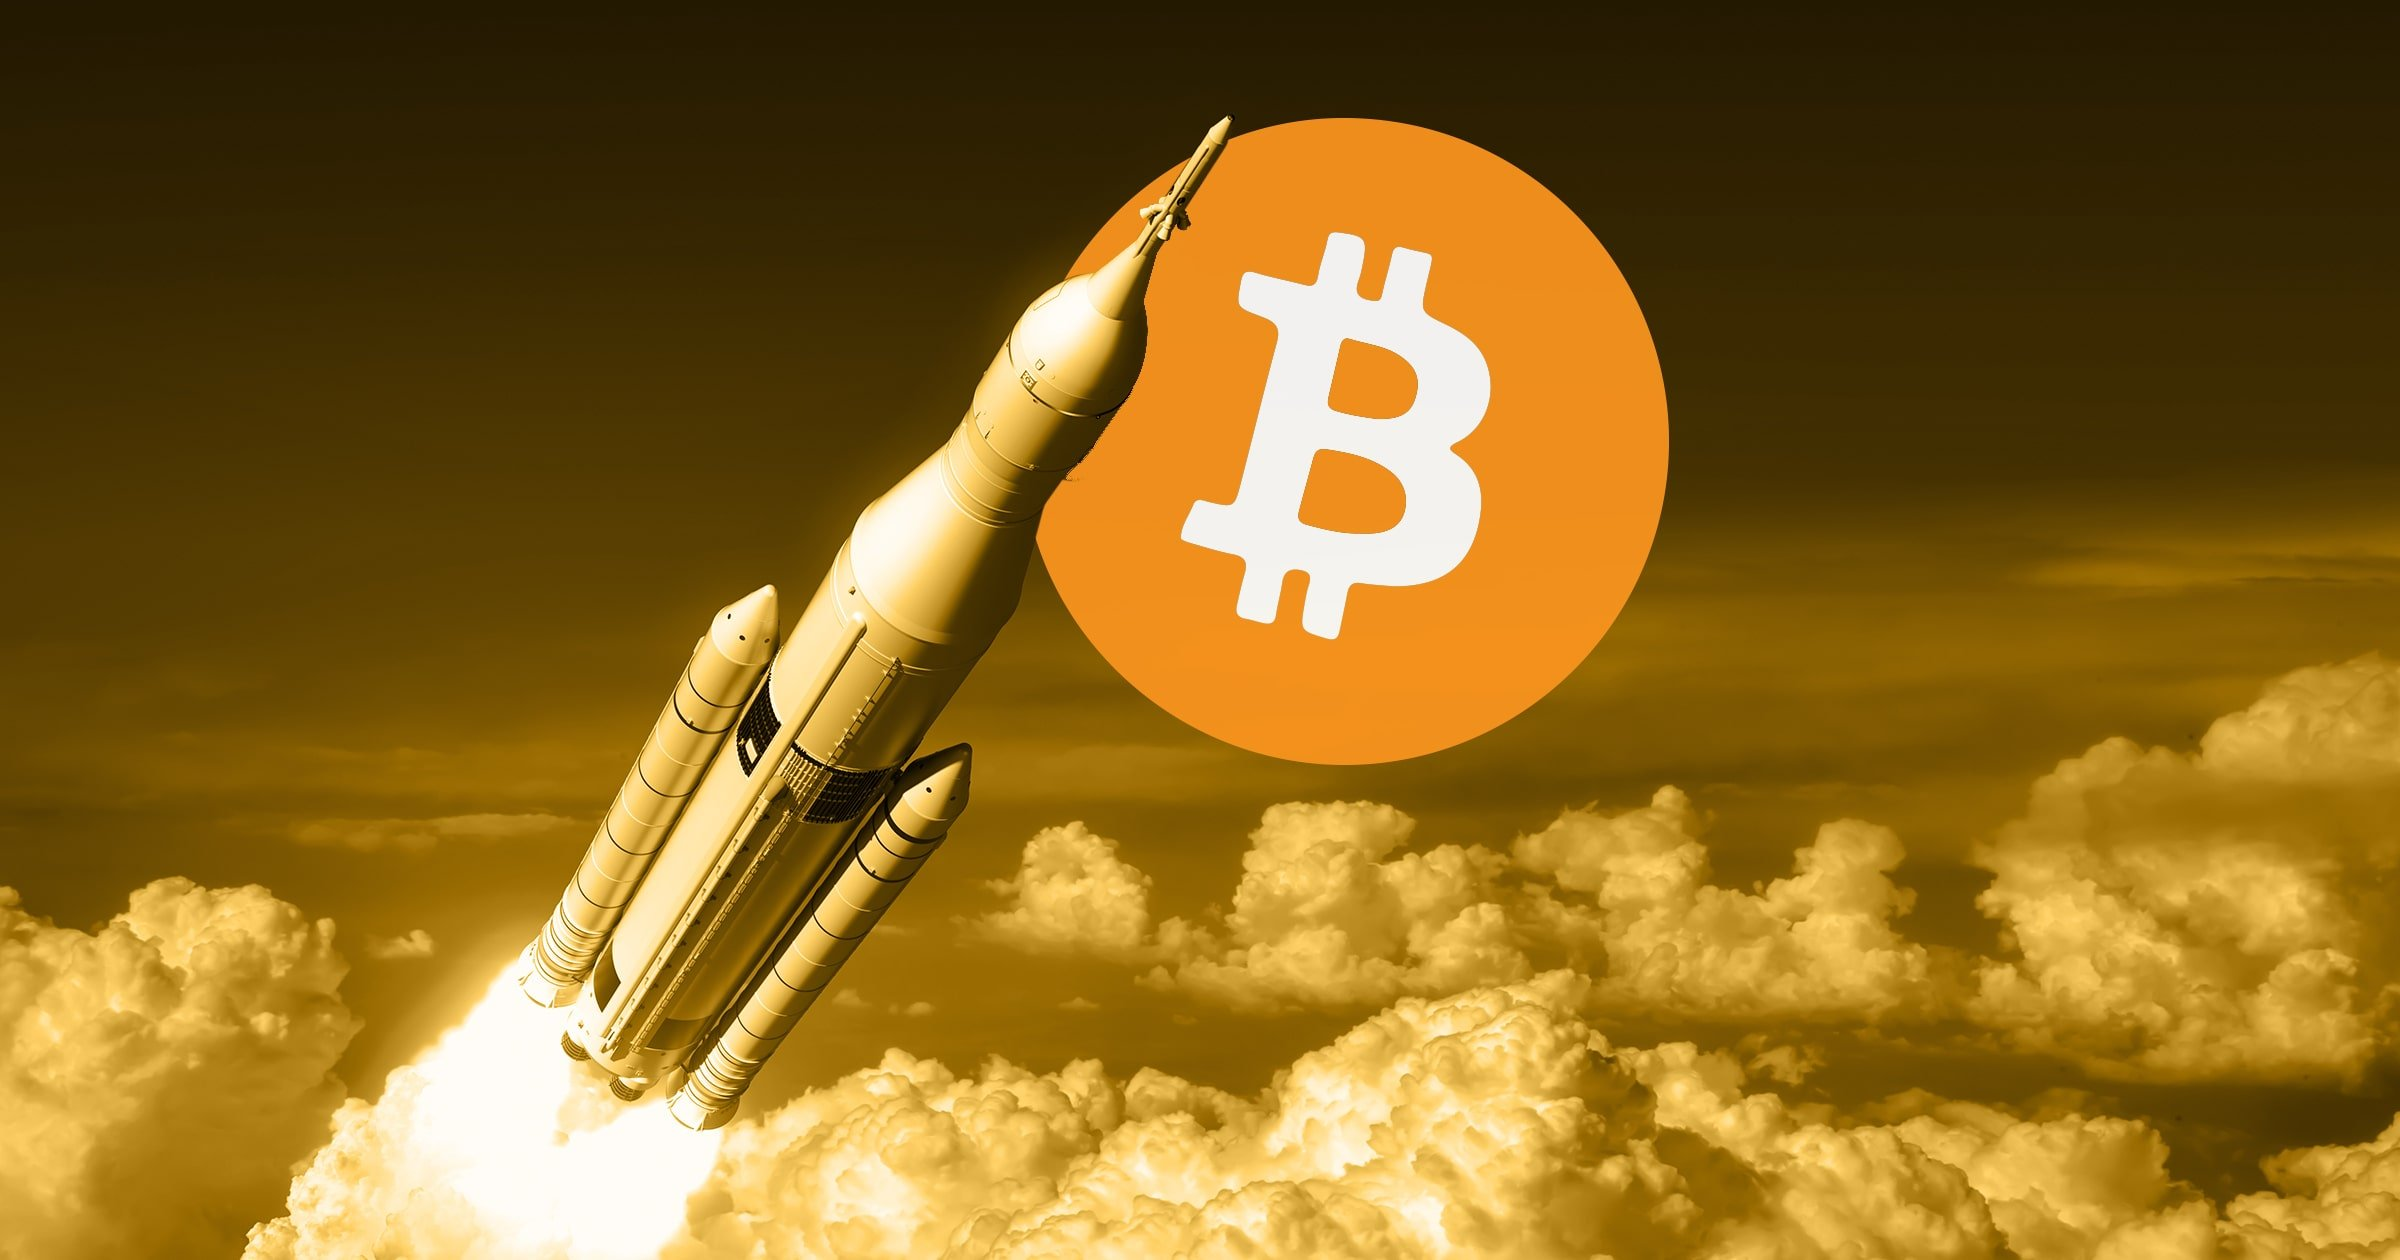 Bitcoin Eyes New Yearly Highs, Buy Pressure Skyrockets